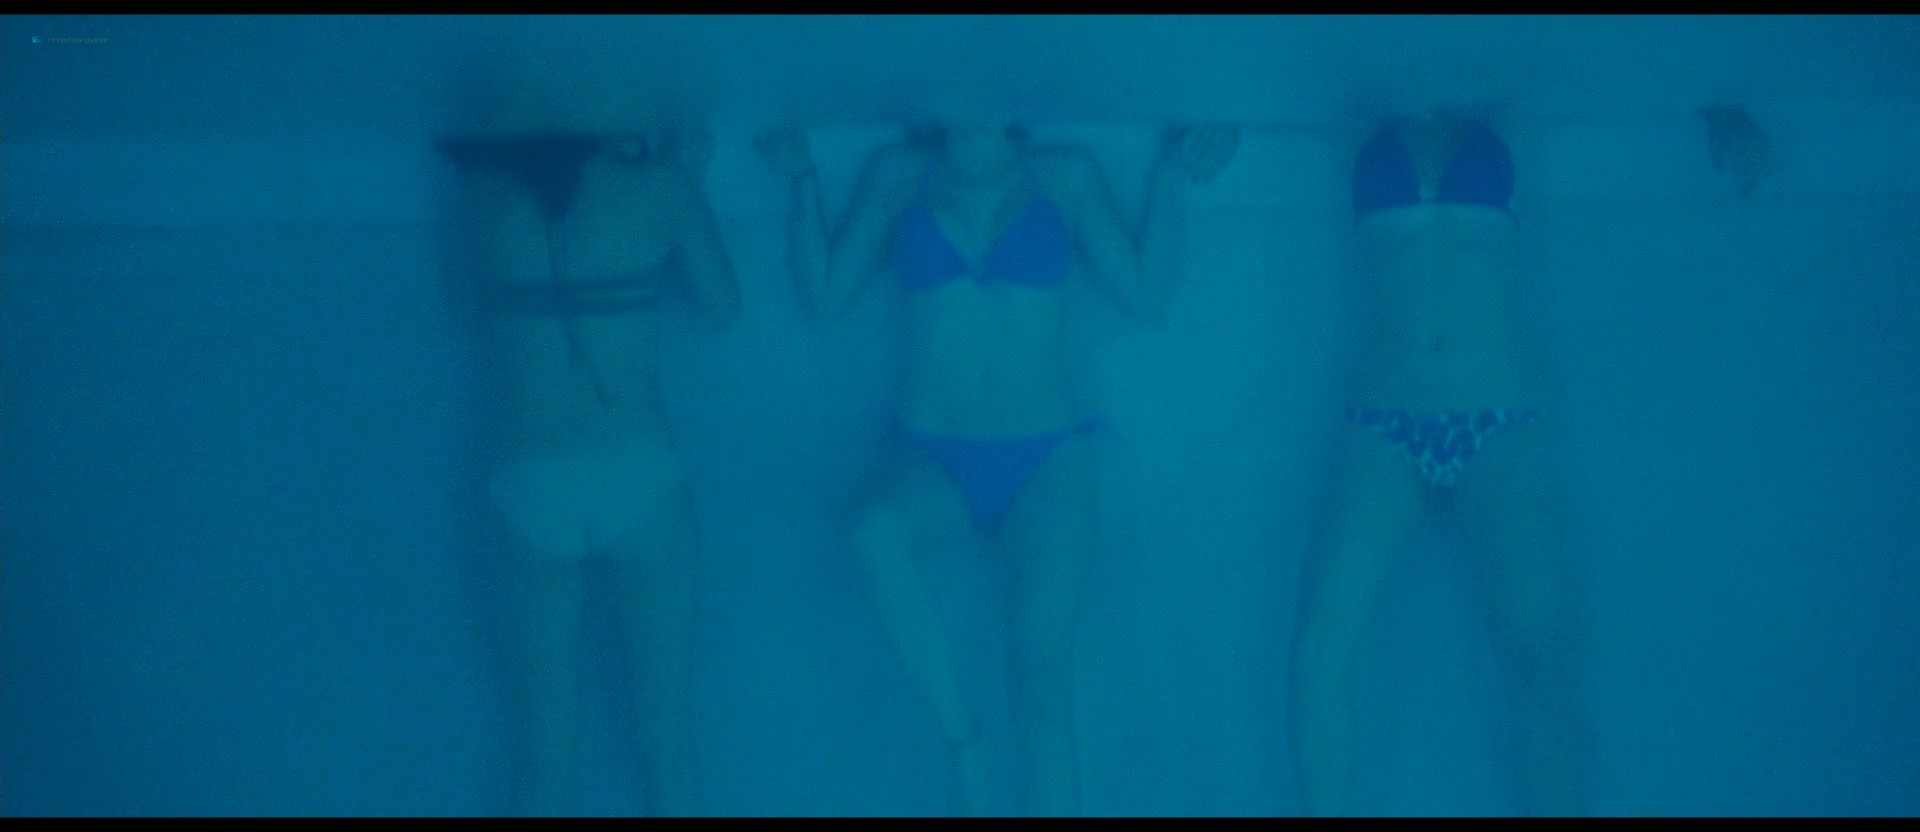 Ashley Benson nude skinny dipping others nude too - Spring Breakers (2012) HD 1080p BluRay (29)